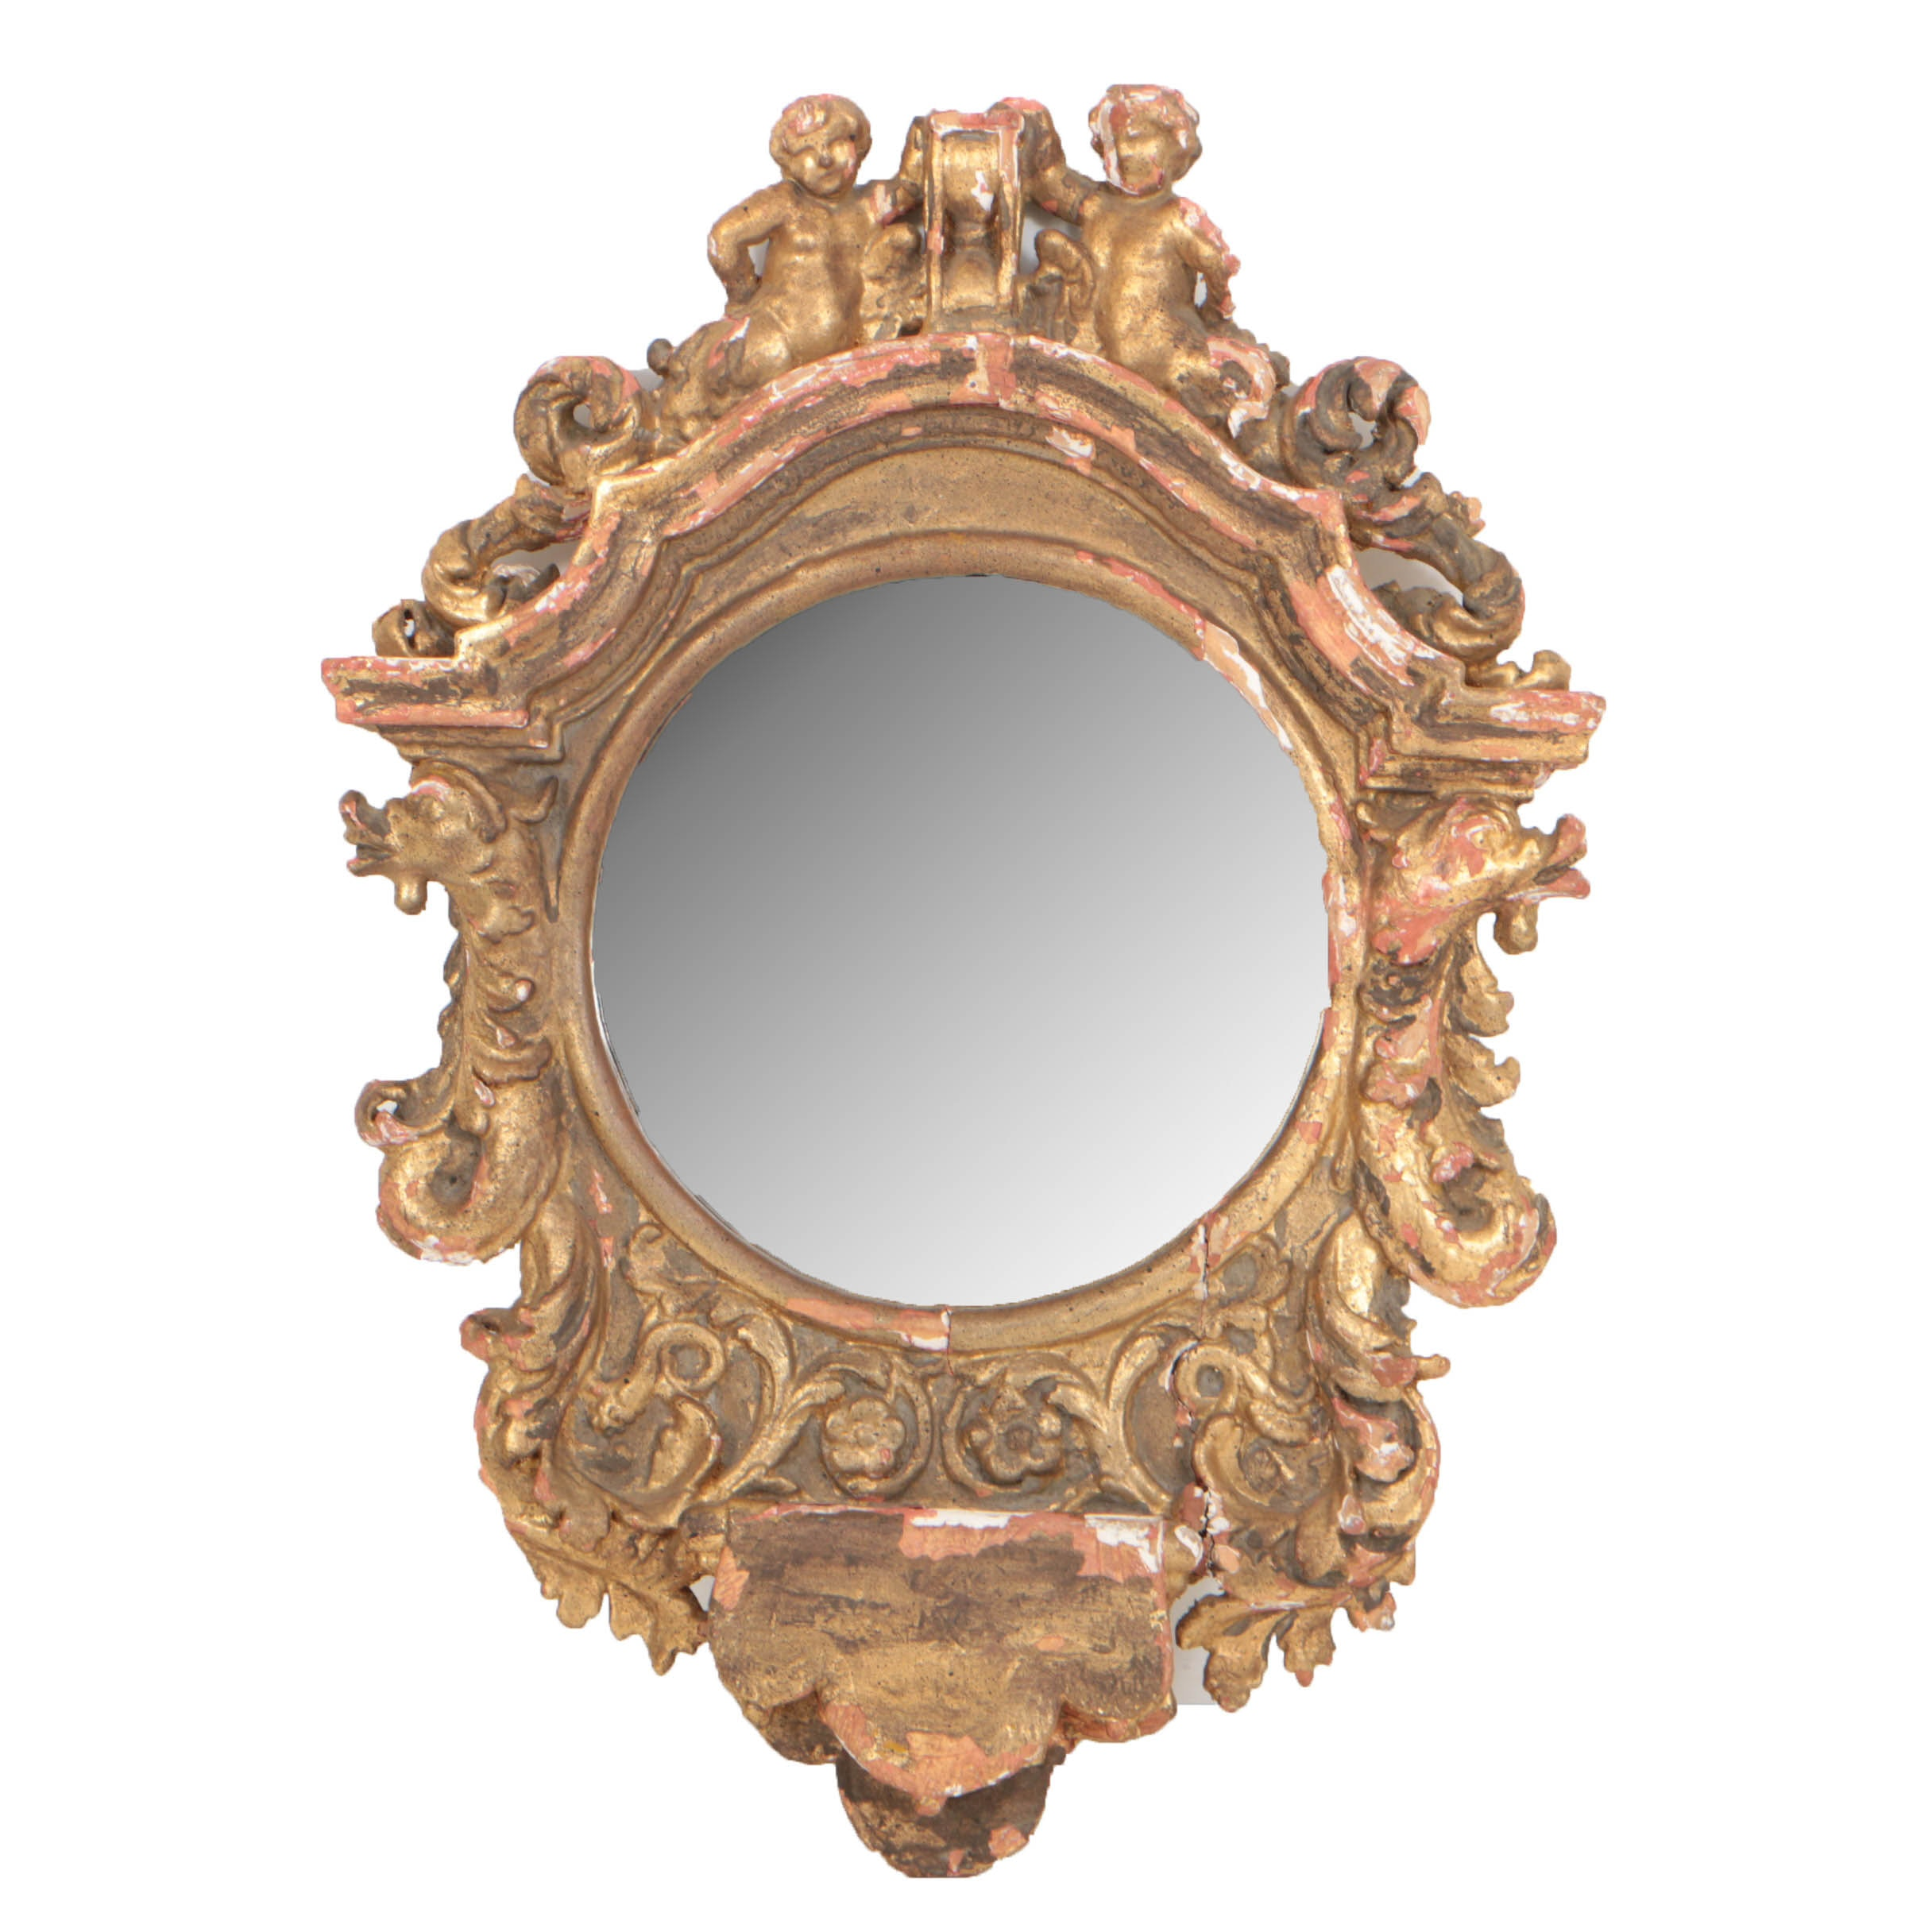 Baroque Style Giltwood Mirror by Span Craft Studios, 20th Century